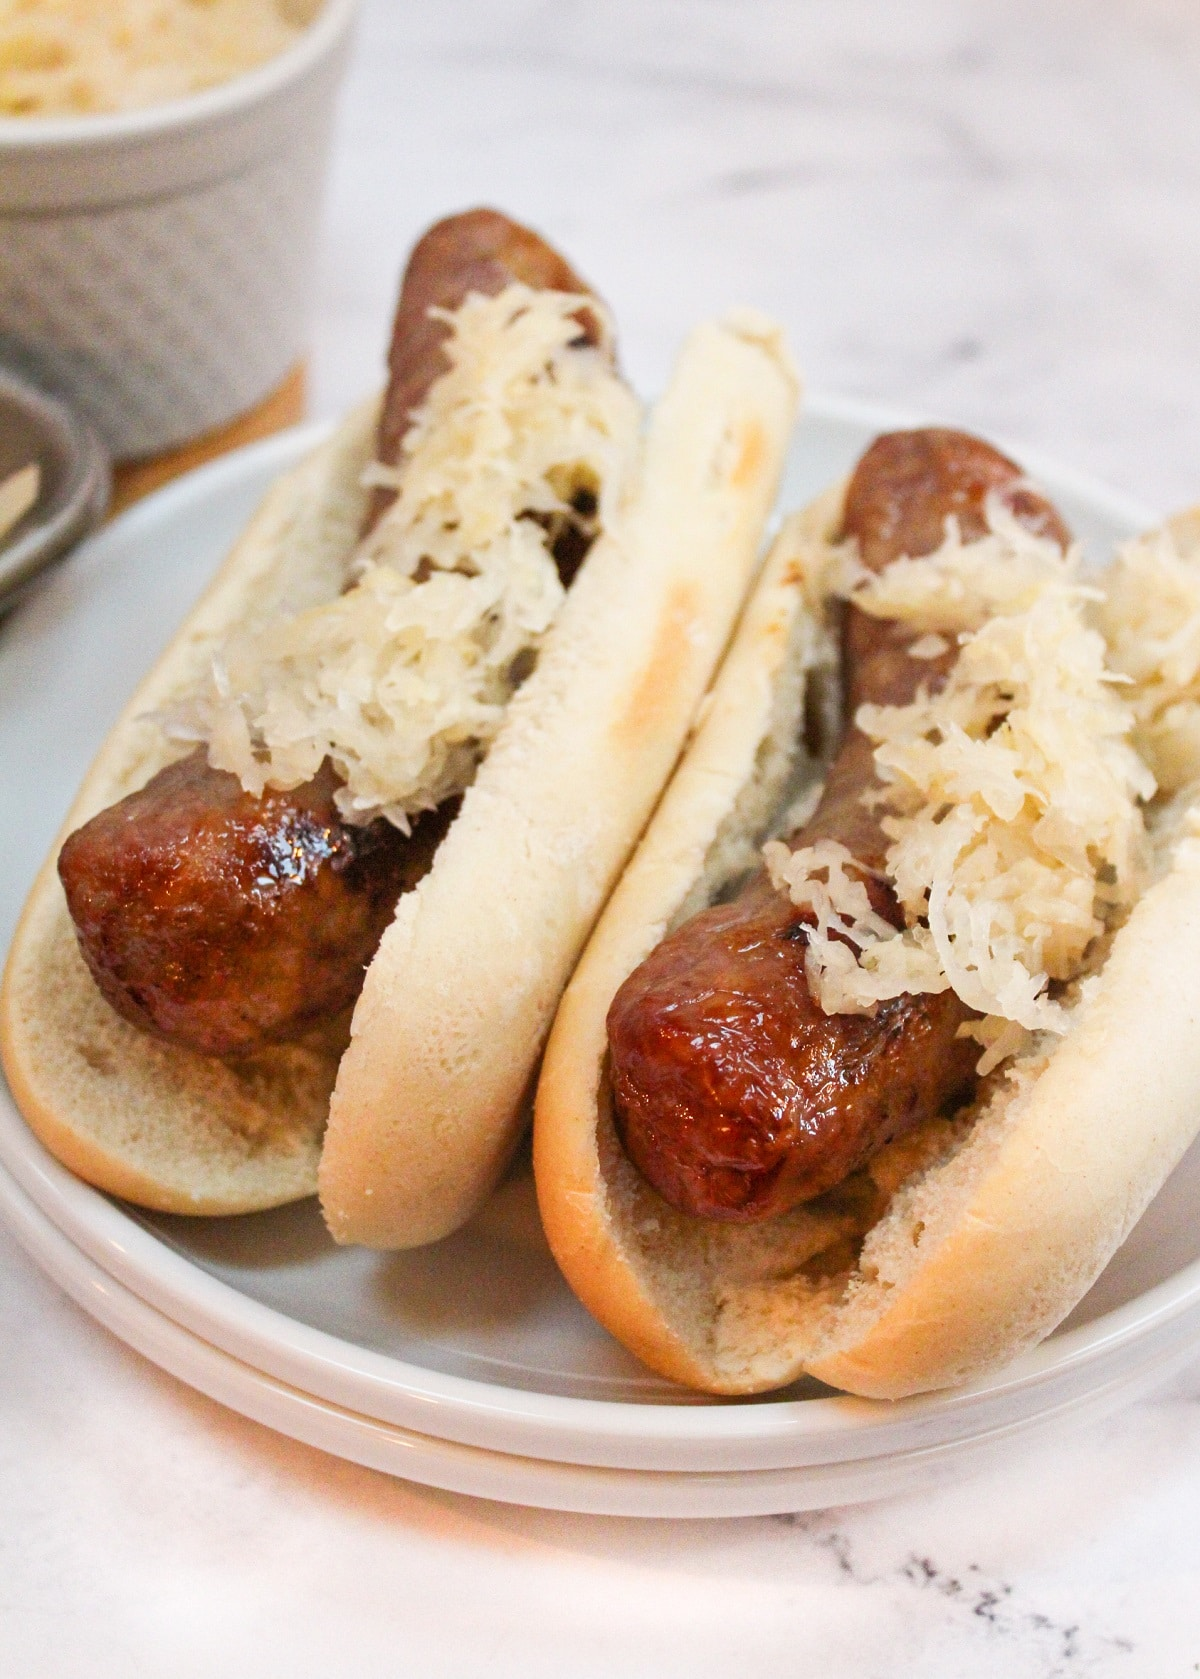 brats in a bun with sauerkraut on top on a white plate